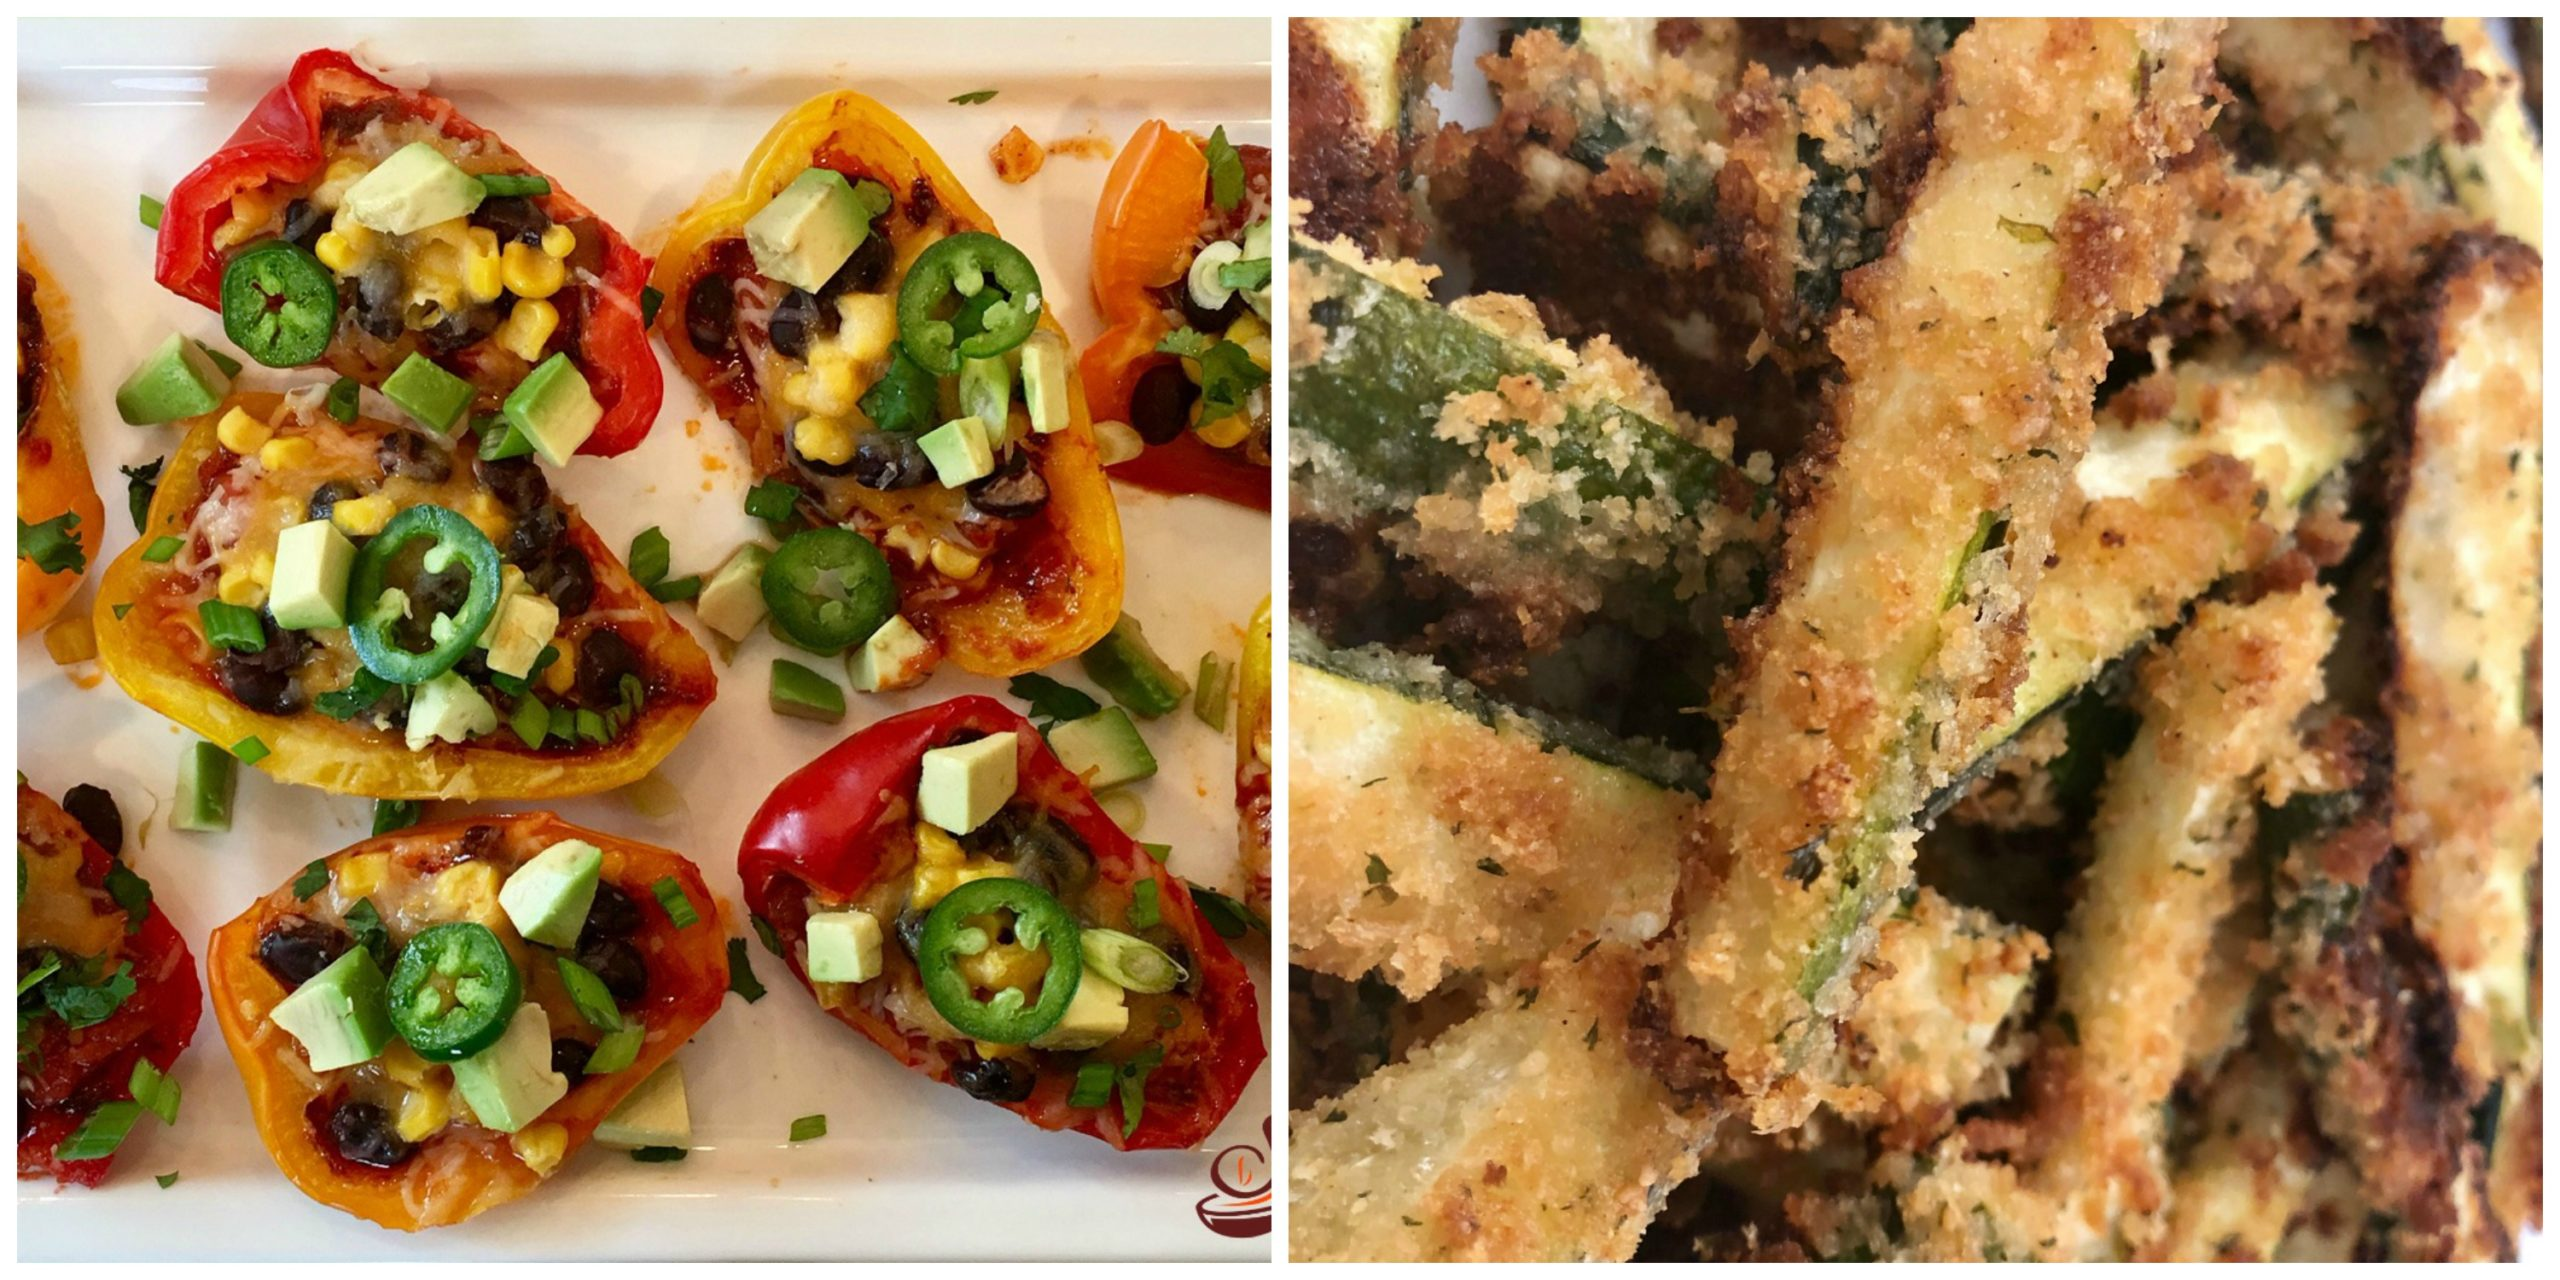 Nacho Peppers and Baked Zucchini Fries